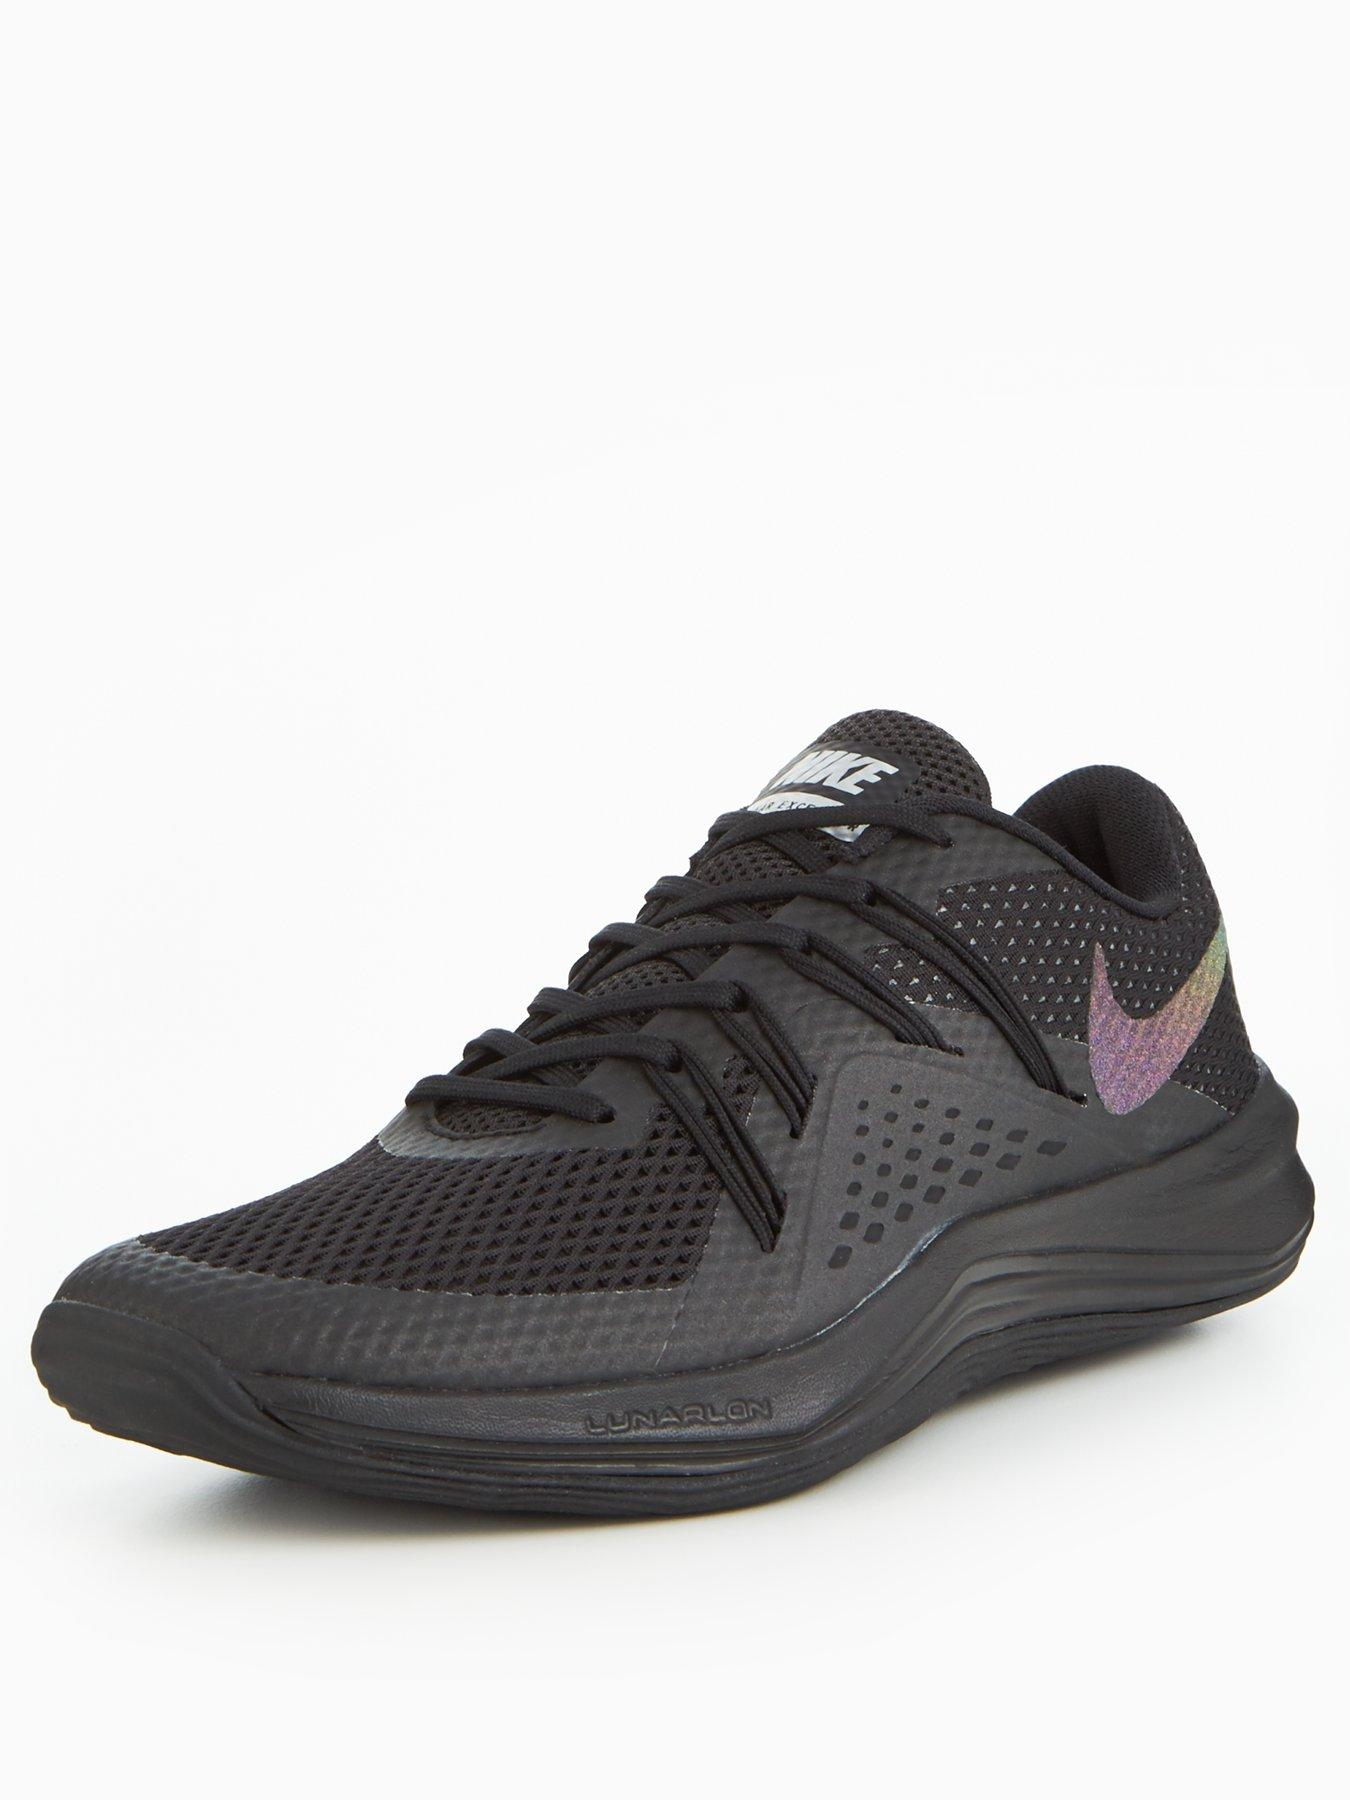 Nike Shine Lunar Exceed TR Black/Silver 1600179741 Women's Shoes Nike Trainers